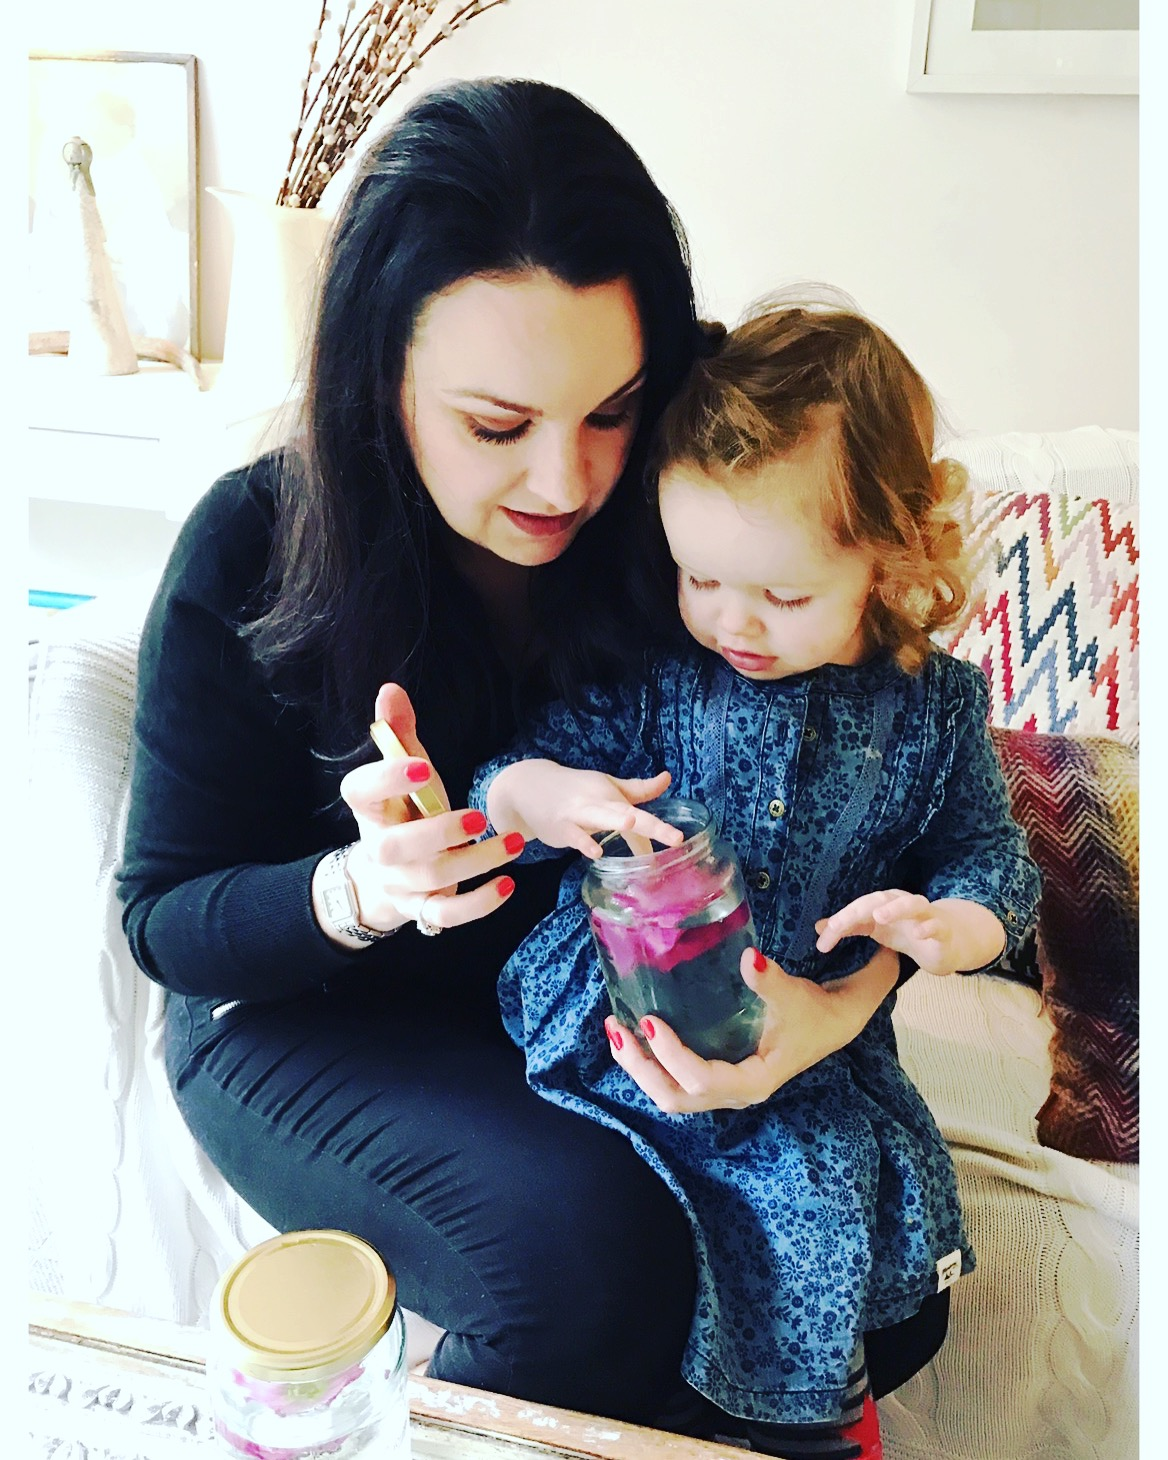 THE TOP TO TOE ROSE PETAL TEST WITH MAXI & MINI